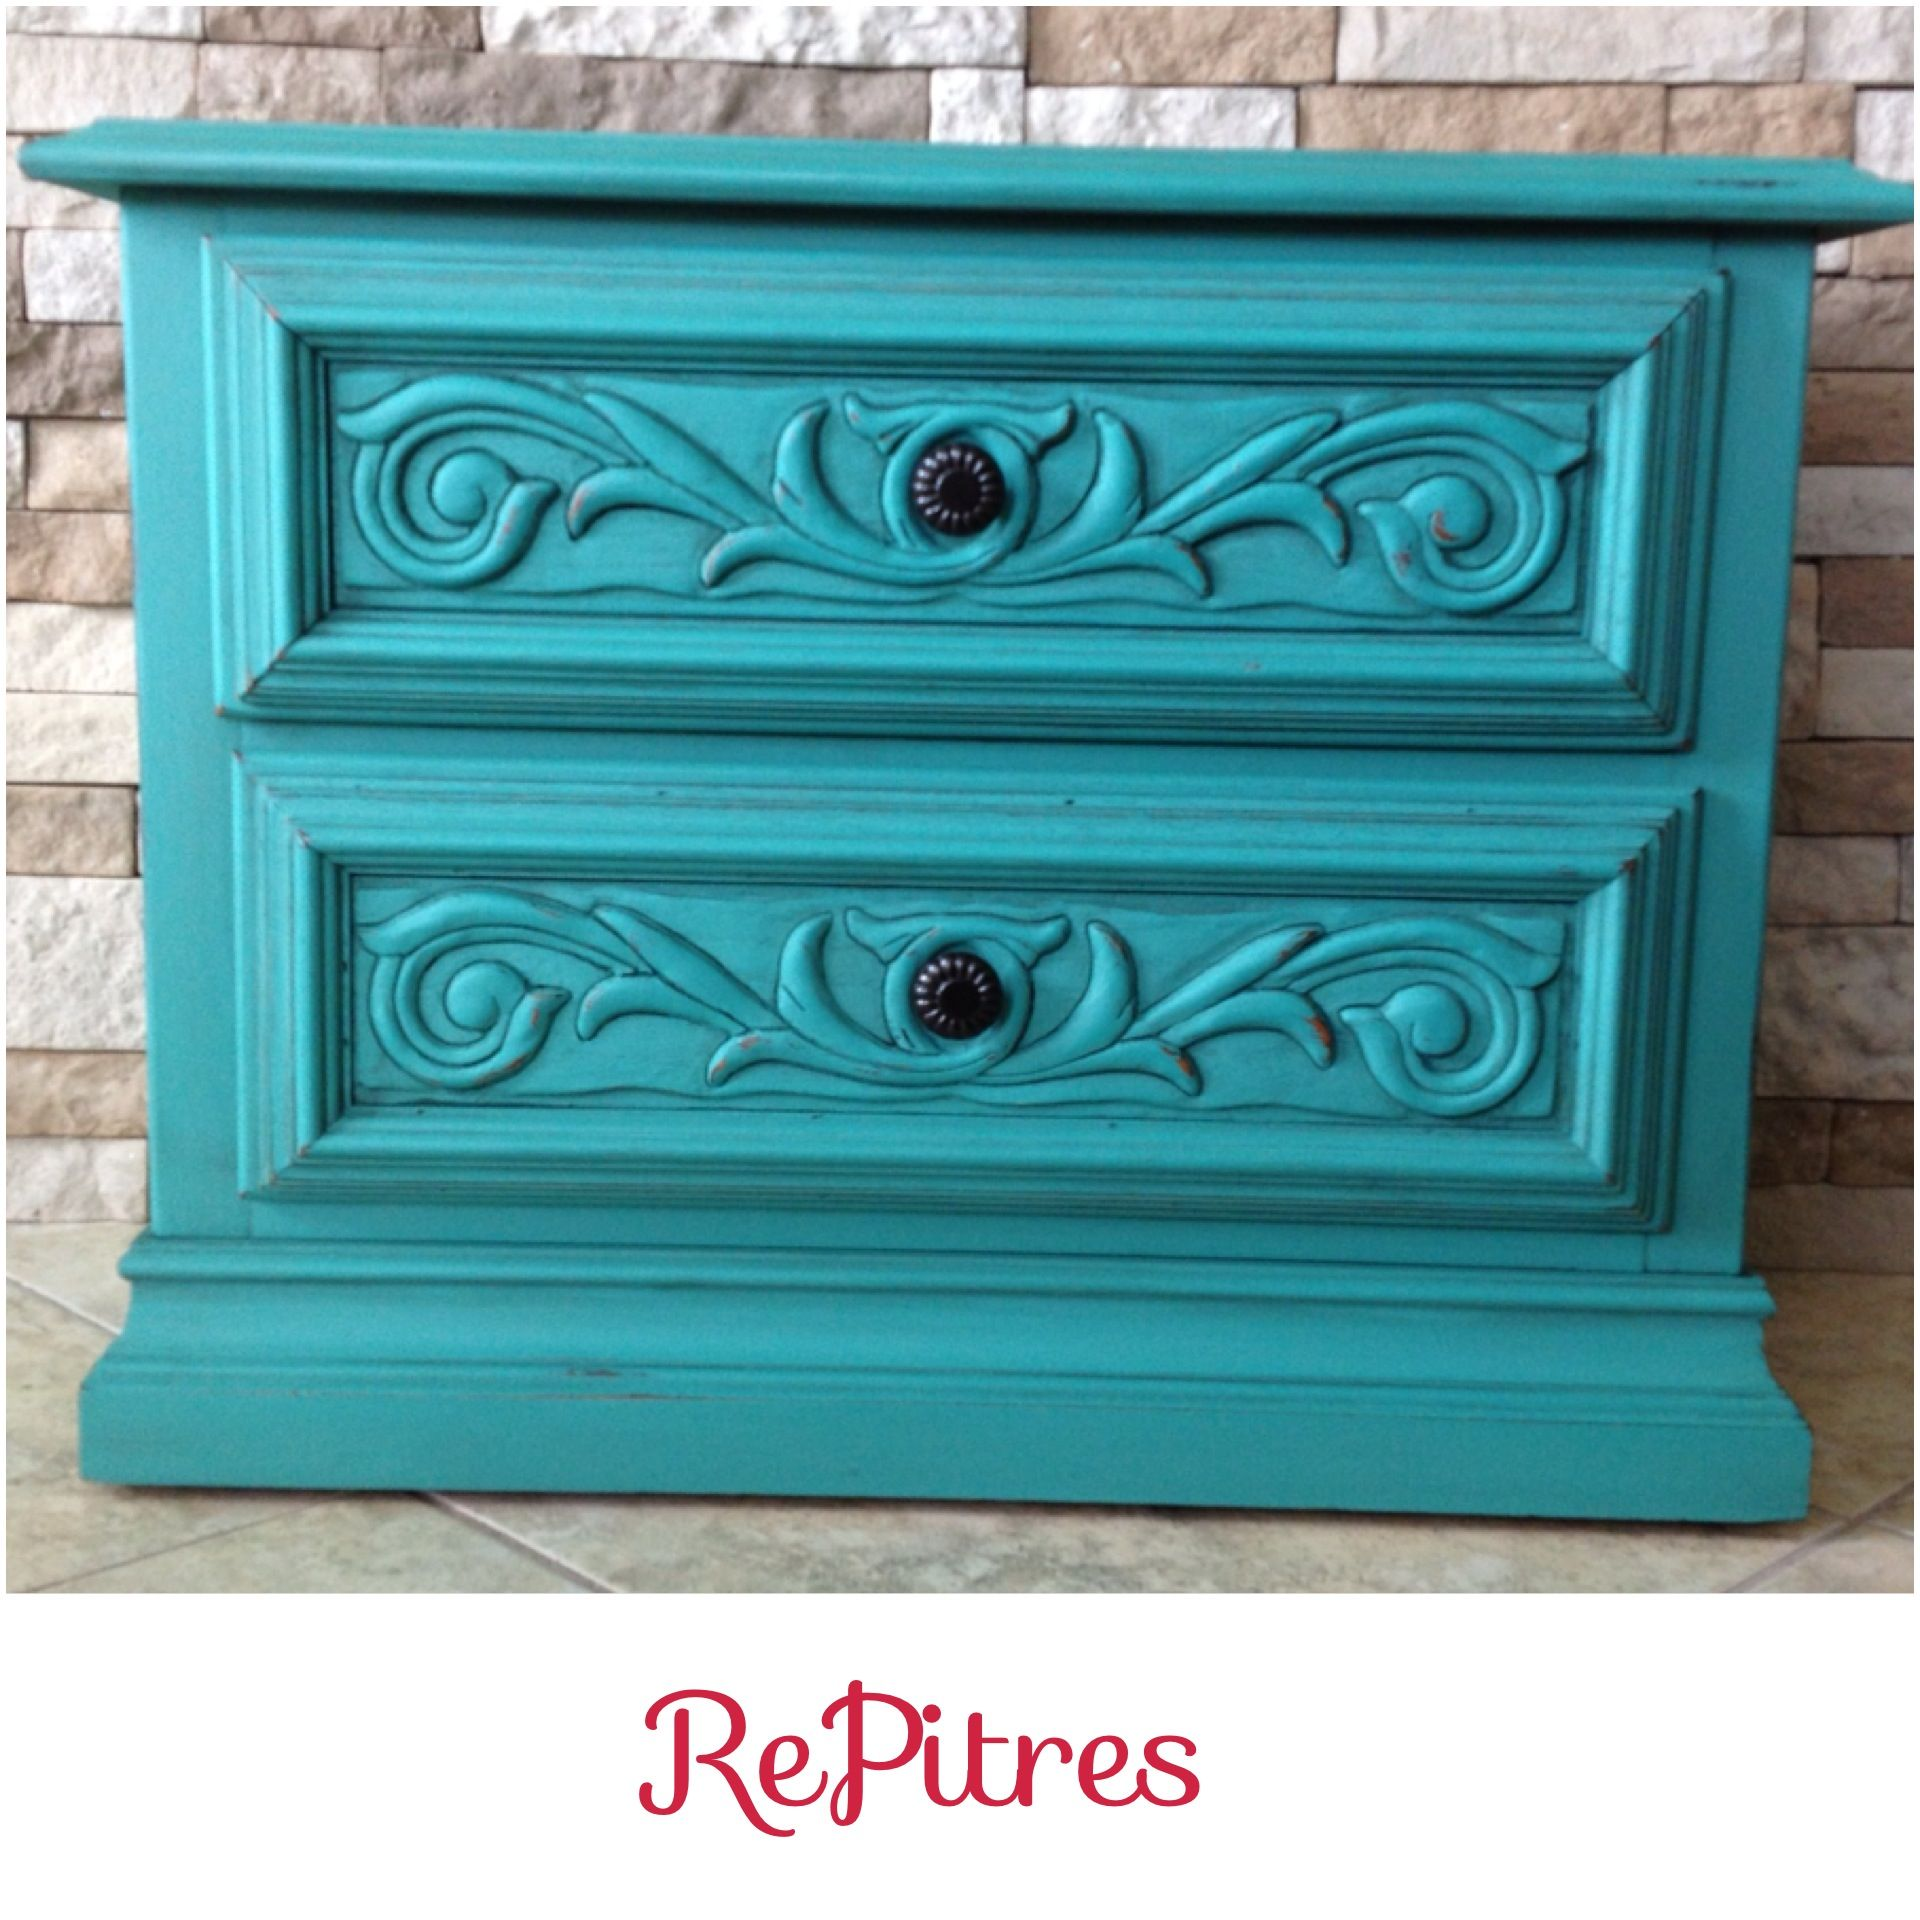 Turquoise Nightstand Painted In Sw Thermal Springs With Miss Mustard Seed Antique Wax Painted Furniture